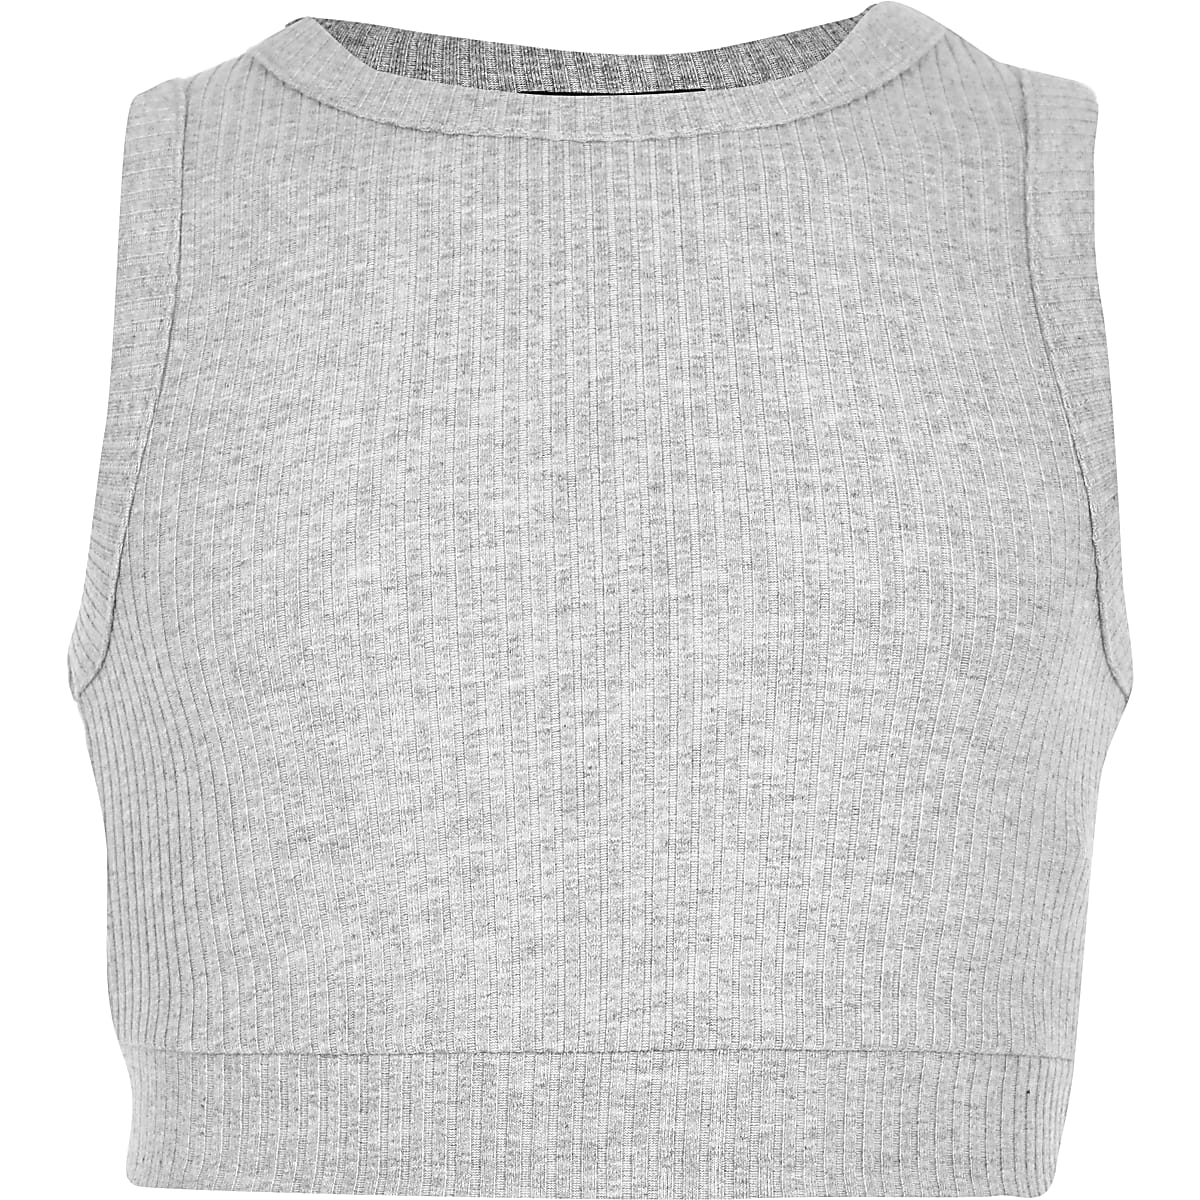 e09f375cf2d Girls grey marl ribbed crop top - Crop Tops - Tops - girls